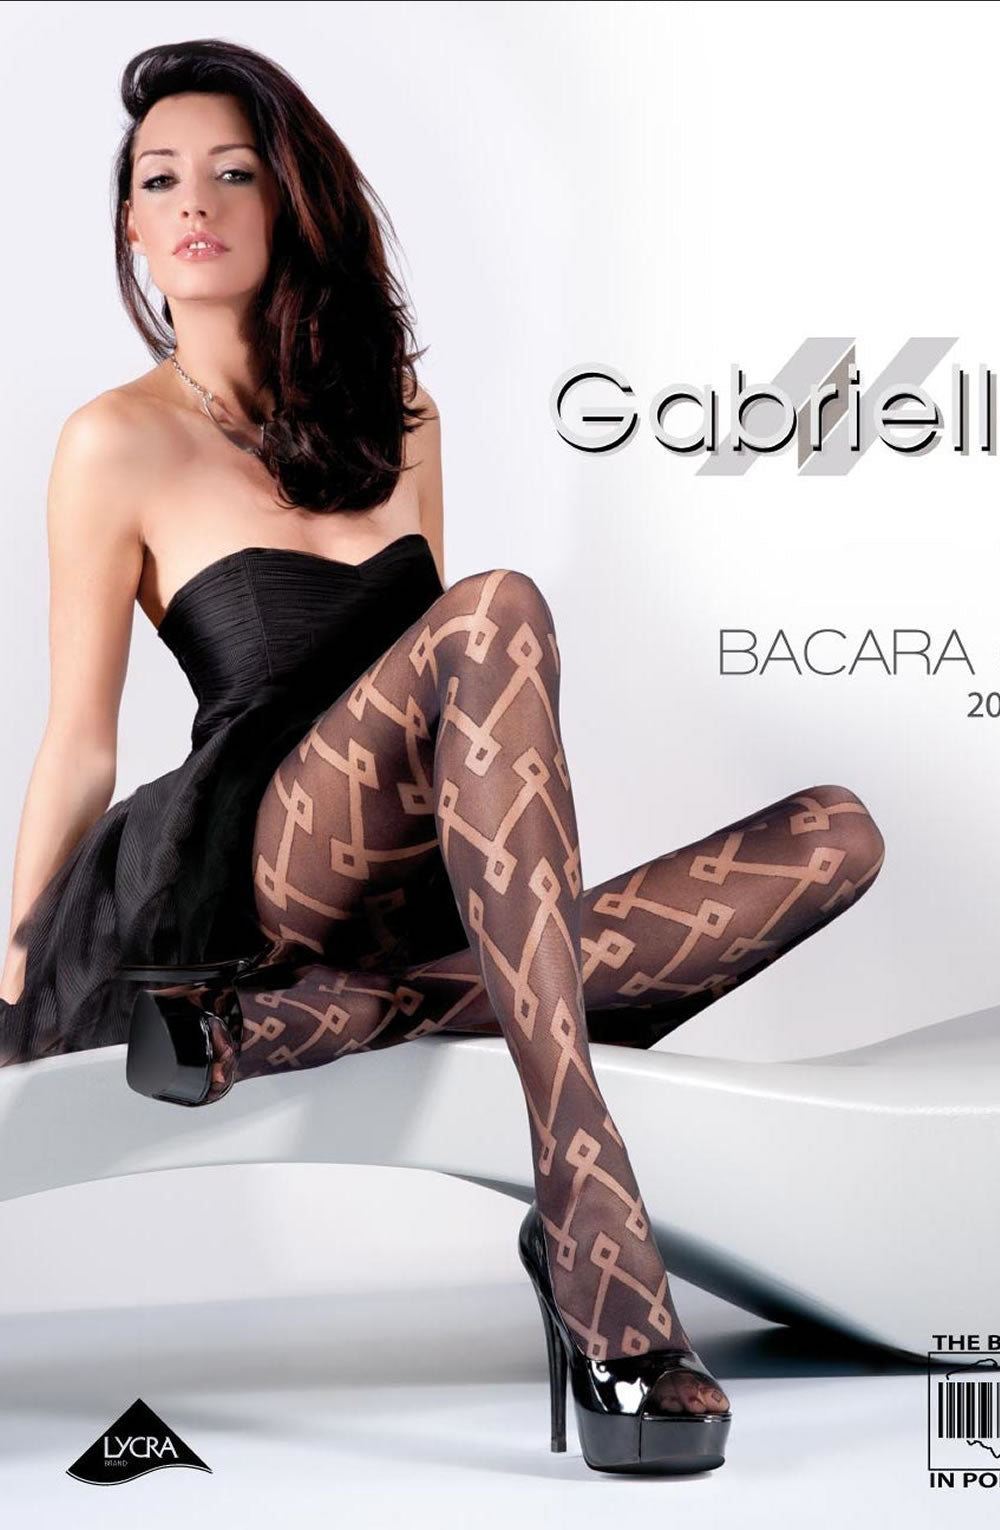 GABRIELLA FANTASIA BACARA 02-476 TIGHTS HOSIERY - NERO (BLACK)